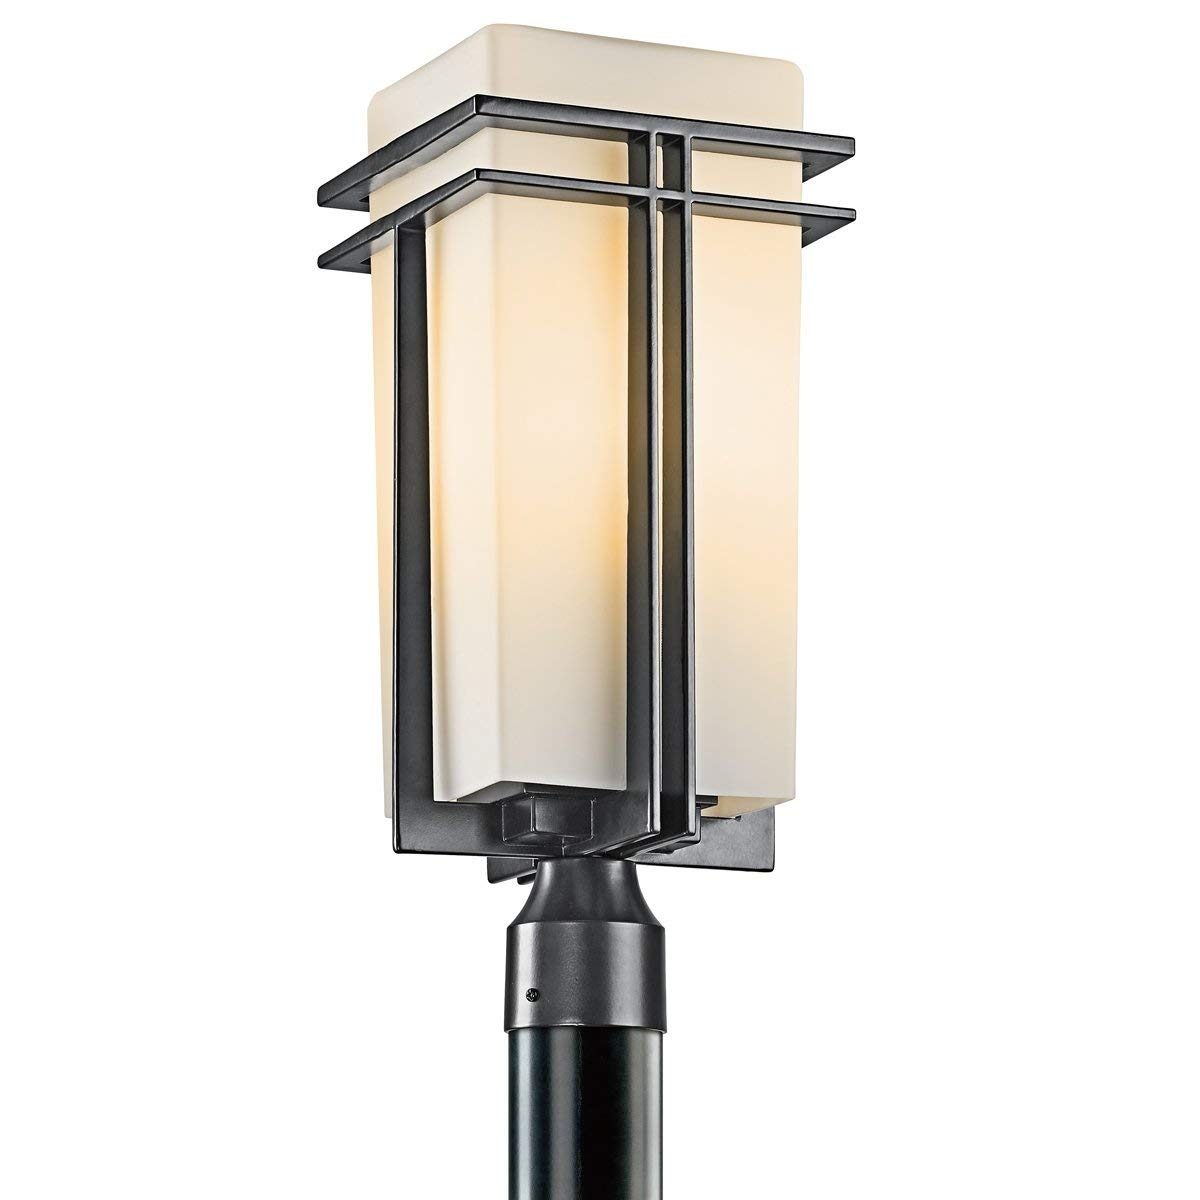 Amazon : Kichler 49207Bk Tremillo Outdoor Post Mount 1-Light intended for Outdoor Post Lanterns (Image 1 of 20)